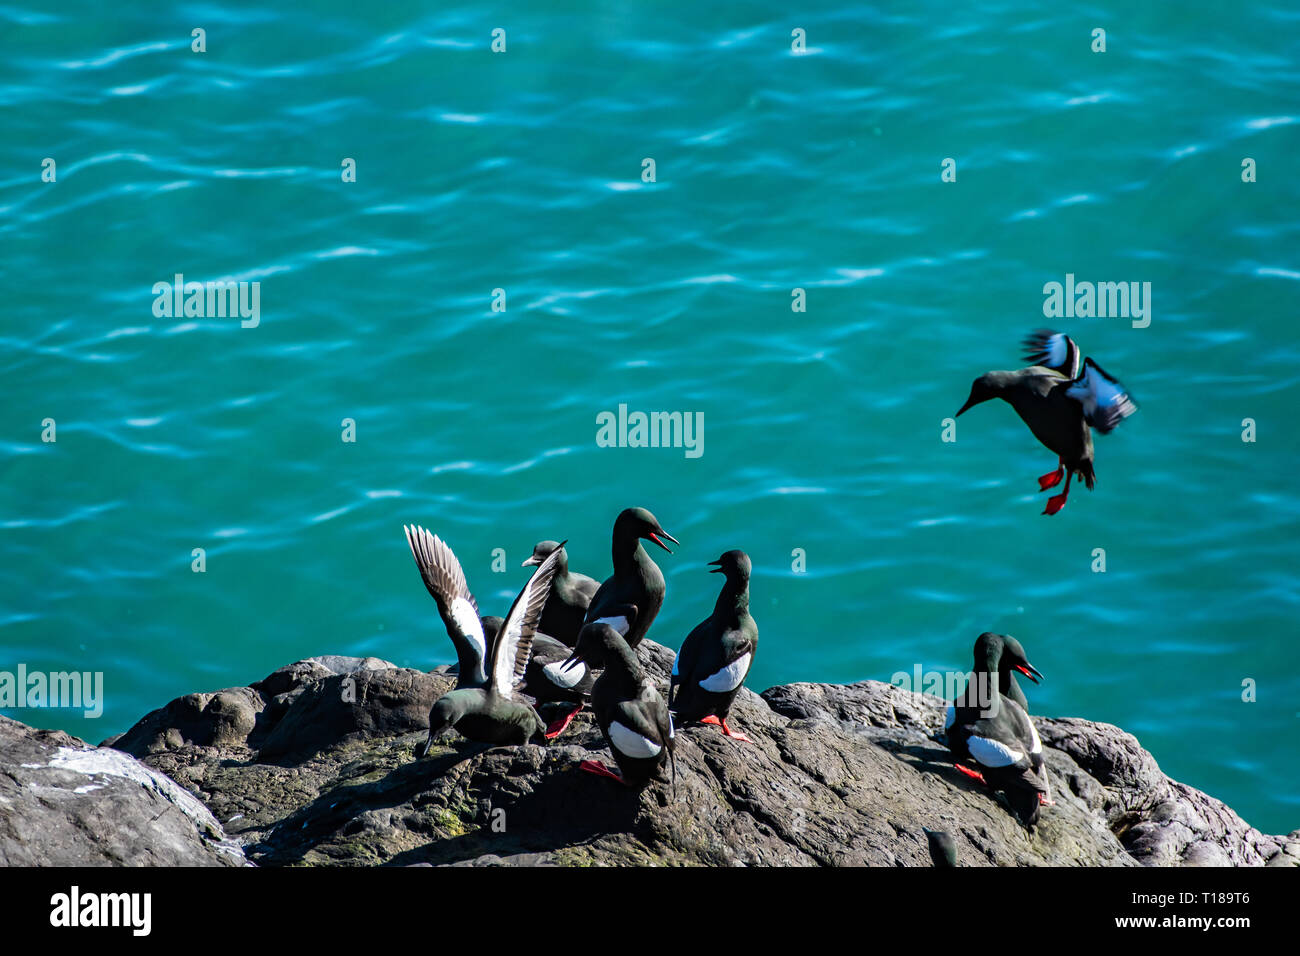 Bray Head, Ireland. 24th March, 2019 Colony of guillemots enjoying warm and wind free weather on the south side cliffs of Bray Head. Credit: Vitaliy Tuzov/Alamy Live News Stock Photo